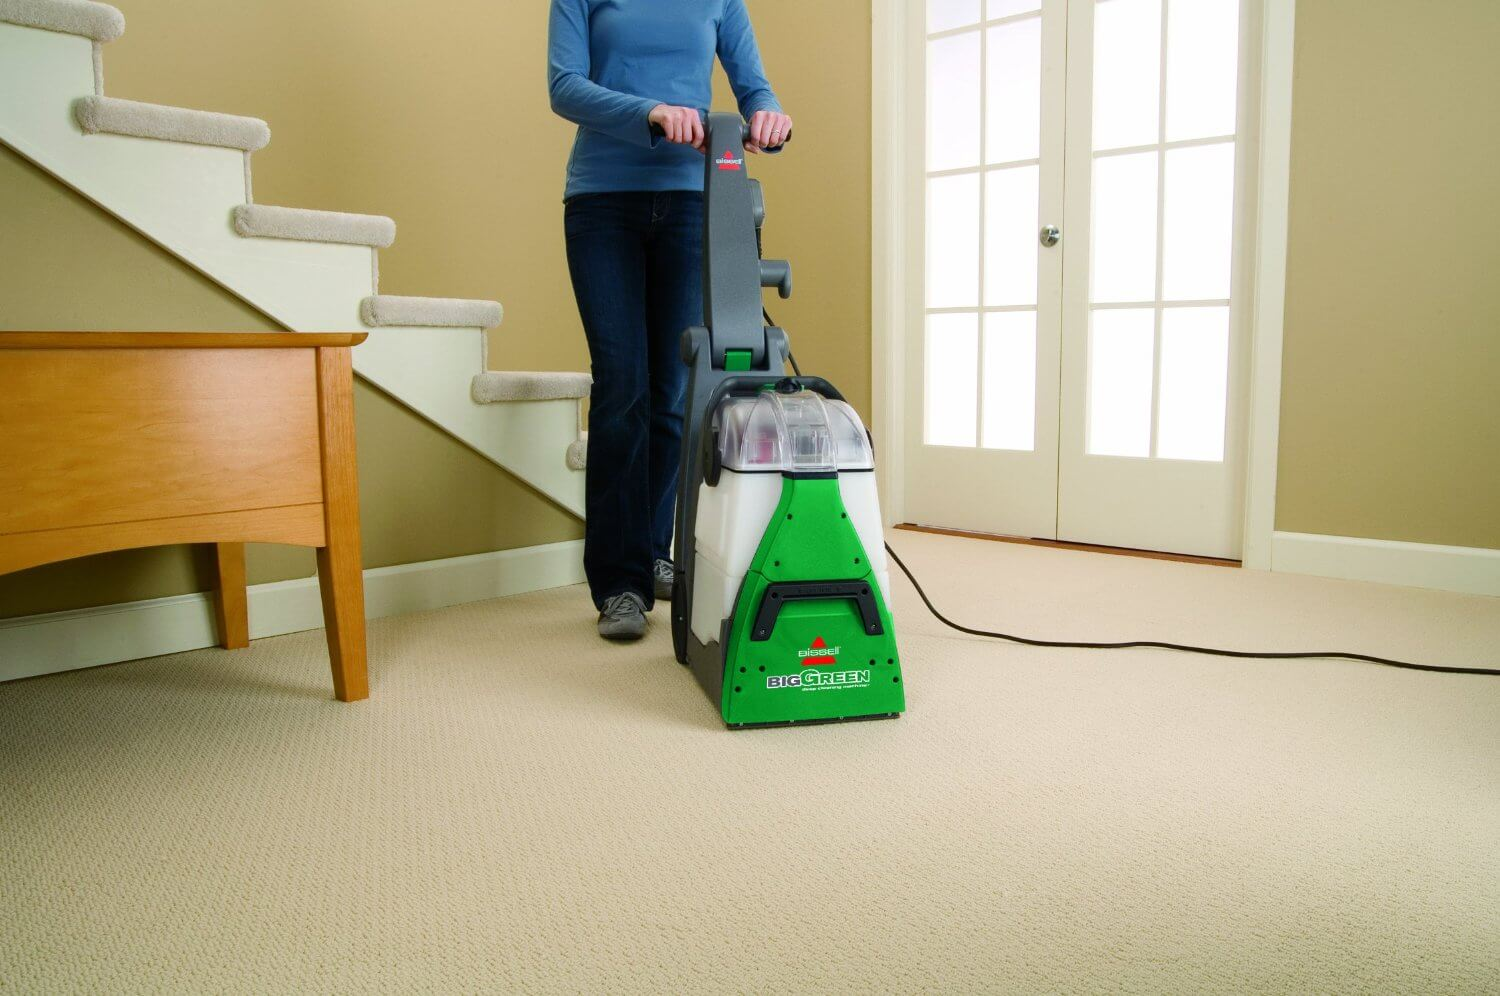 cleaner wood size floor full products of floors cleaning bissell deluxe multi best steam purpose mop hardwood laminate